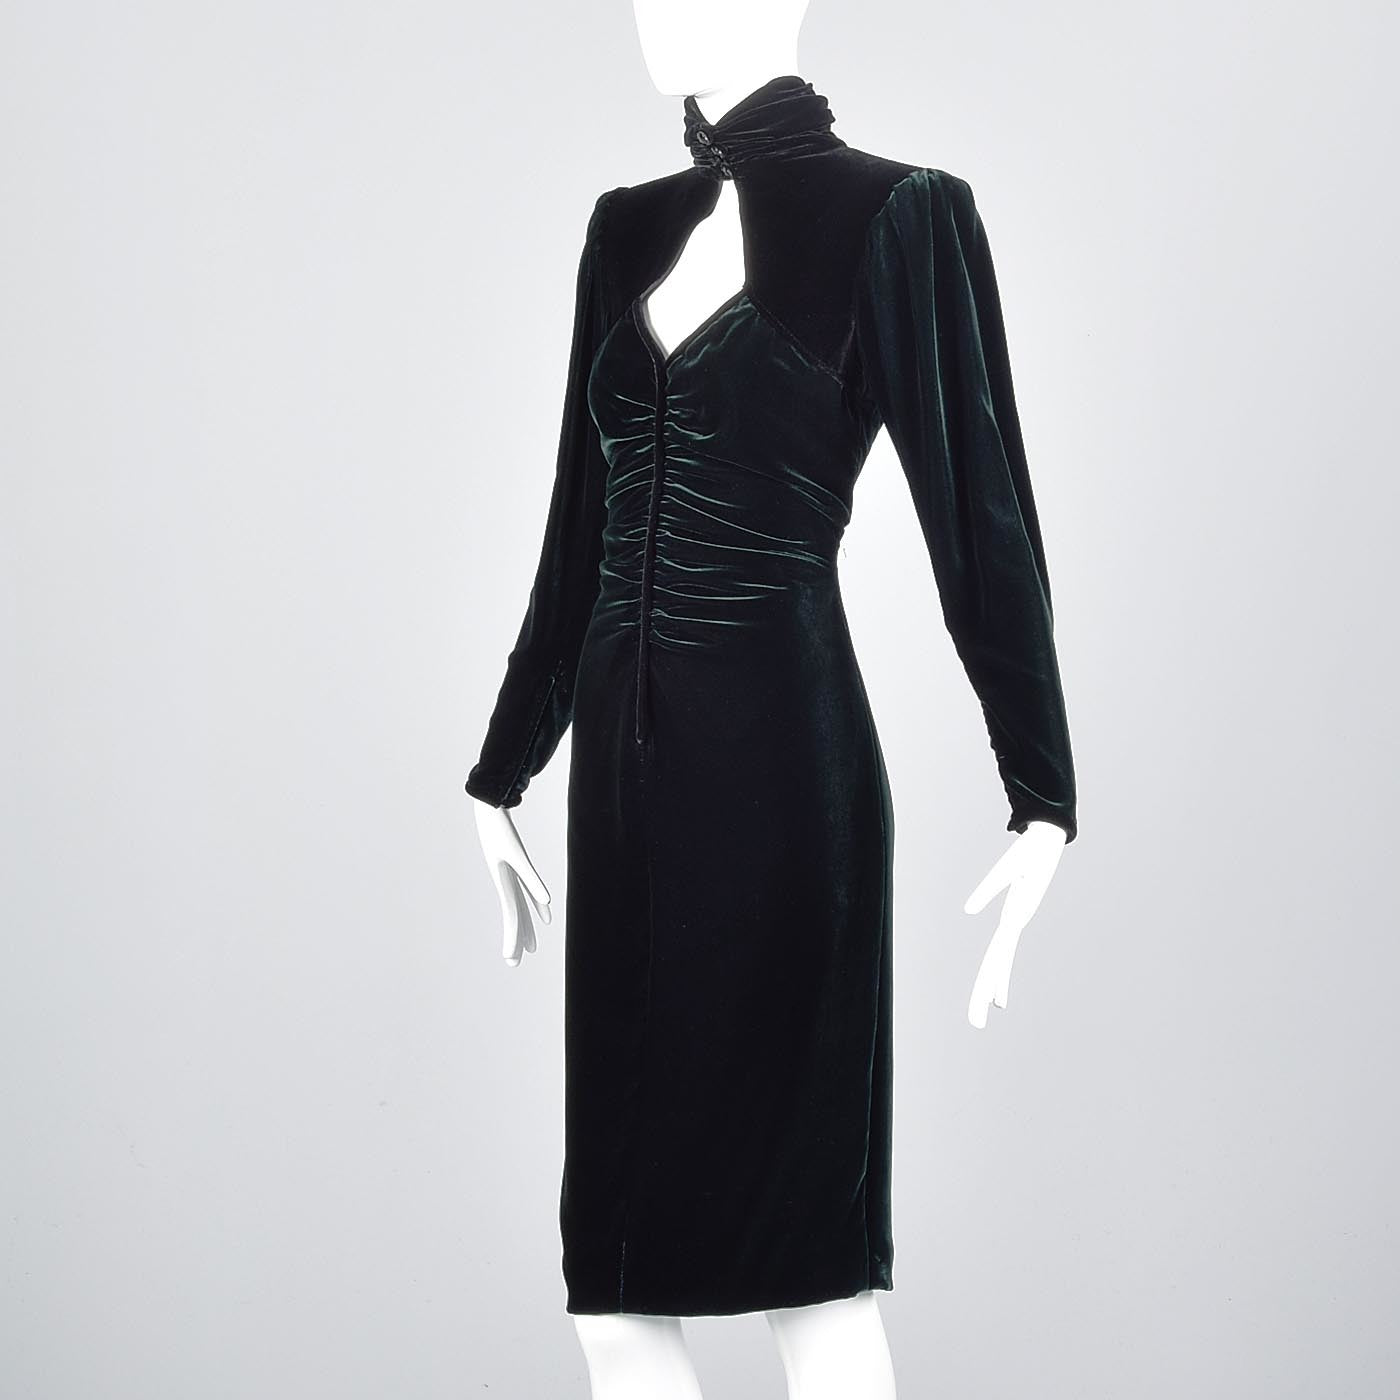 1980s Emmanuel Ungaro Parallele Green Velvet Dress with Keyhole Bust